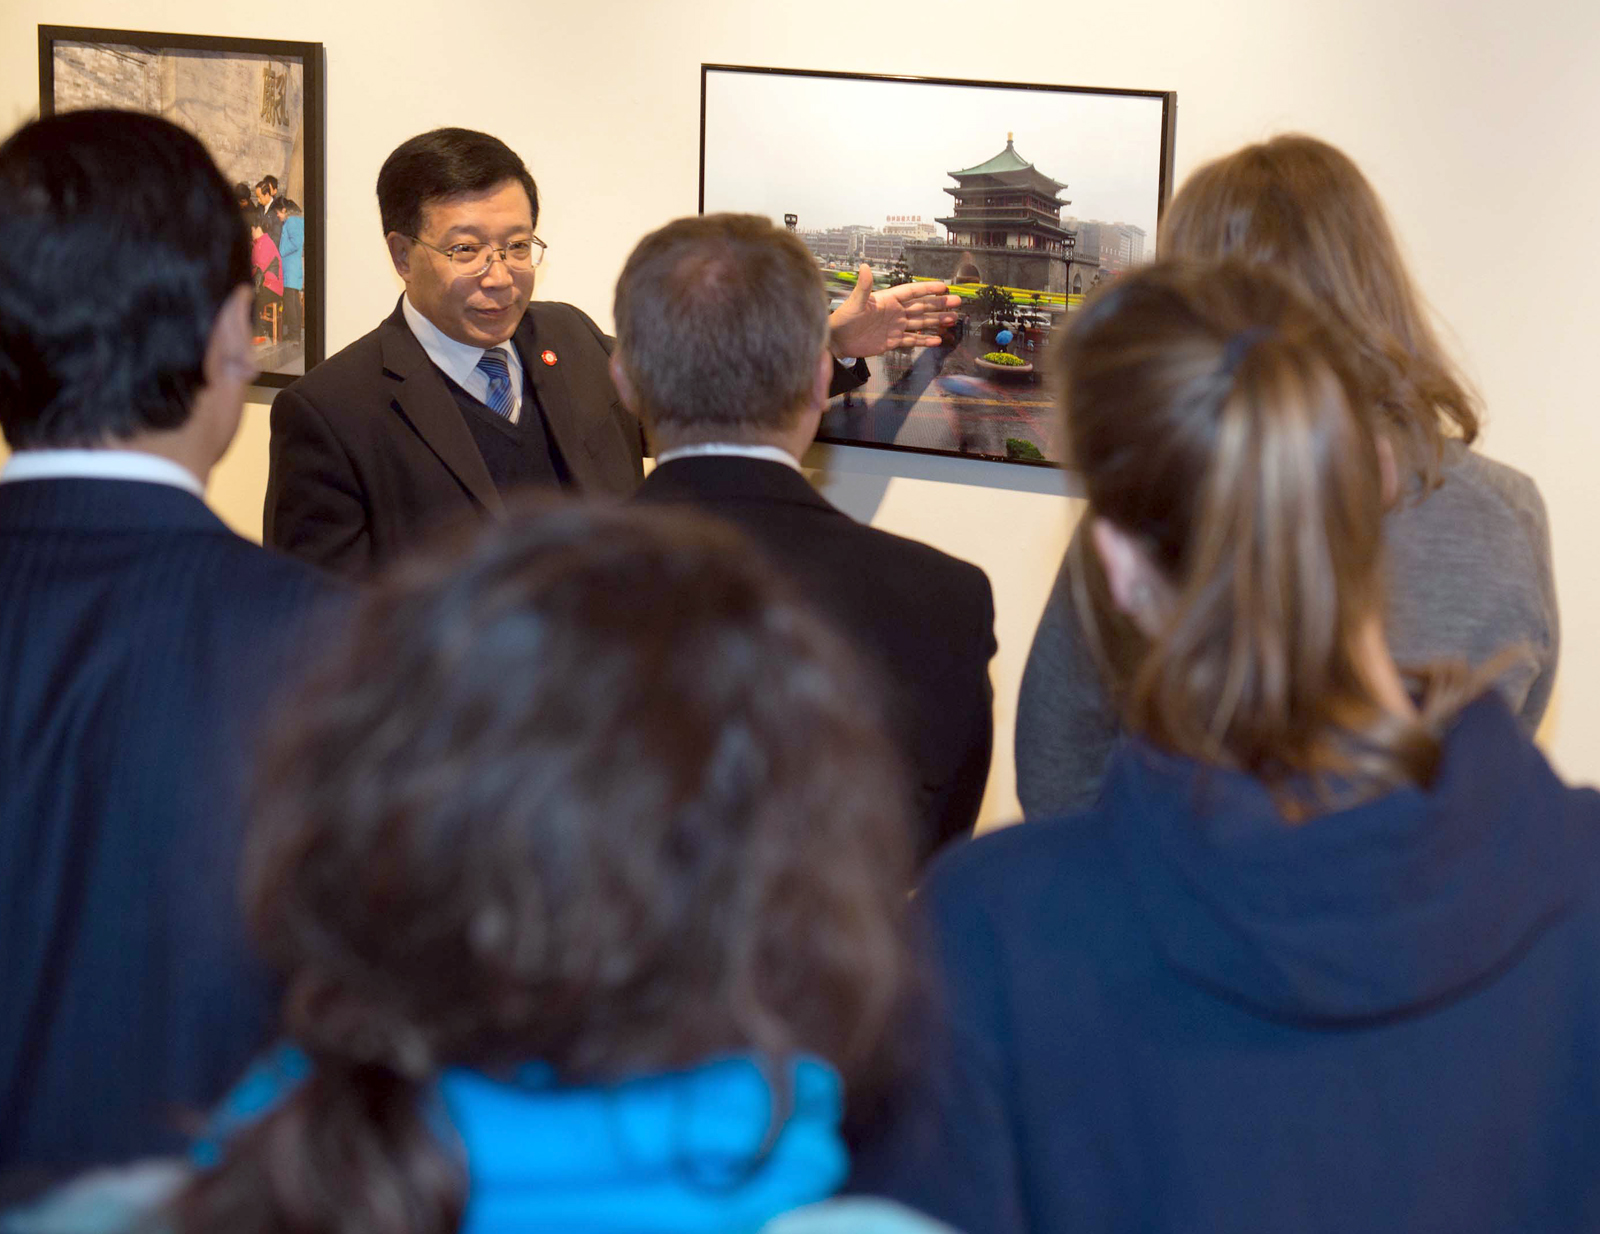 Song Xiaoping, vice president at Xi'an Jiaotong University, leads a Nov. 14 tour of a photography exhibition in Richards Hall.